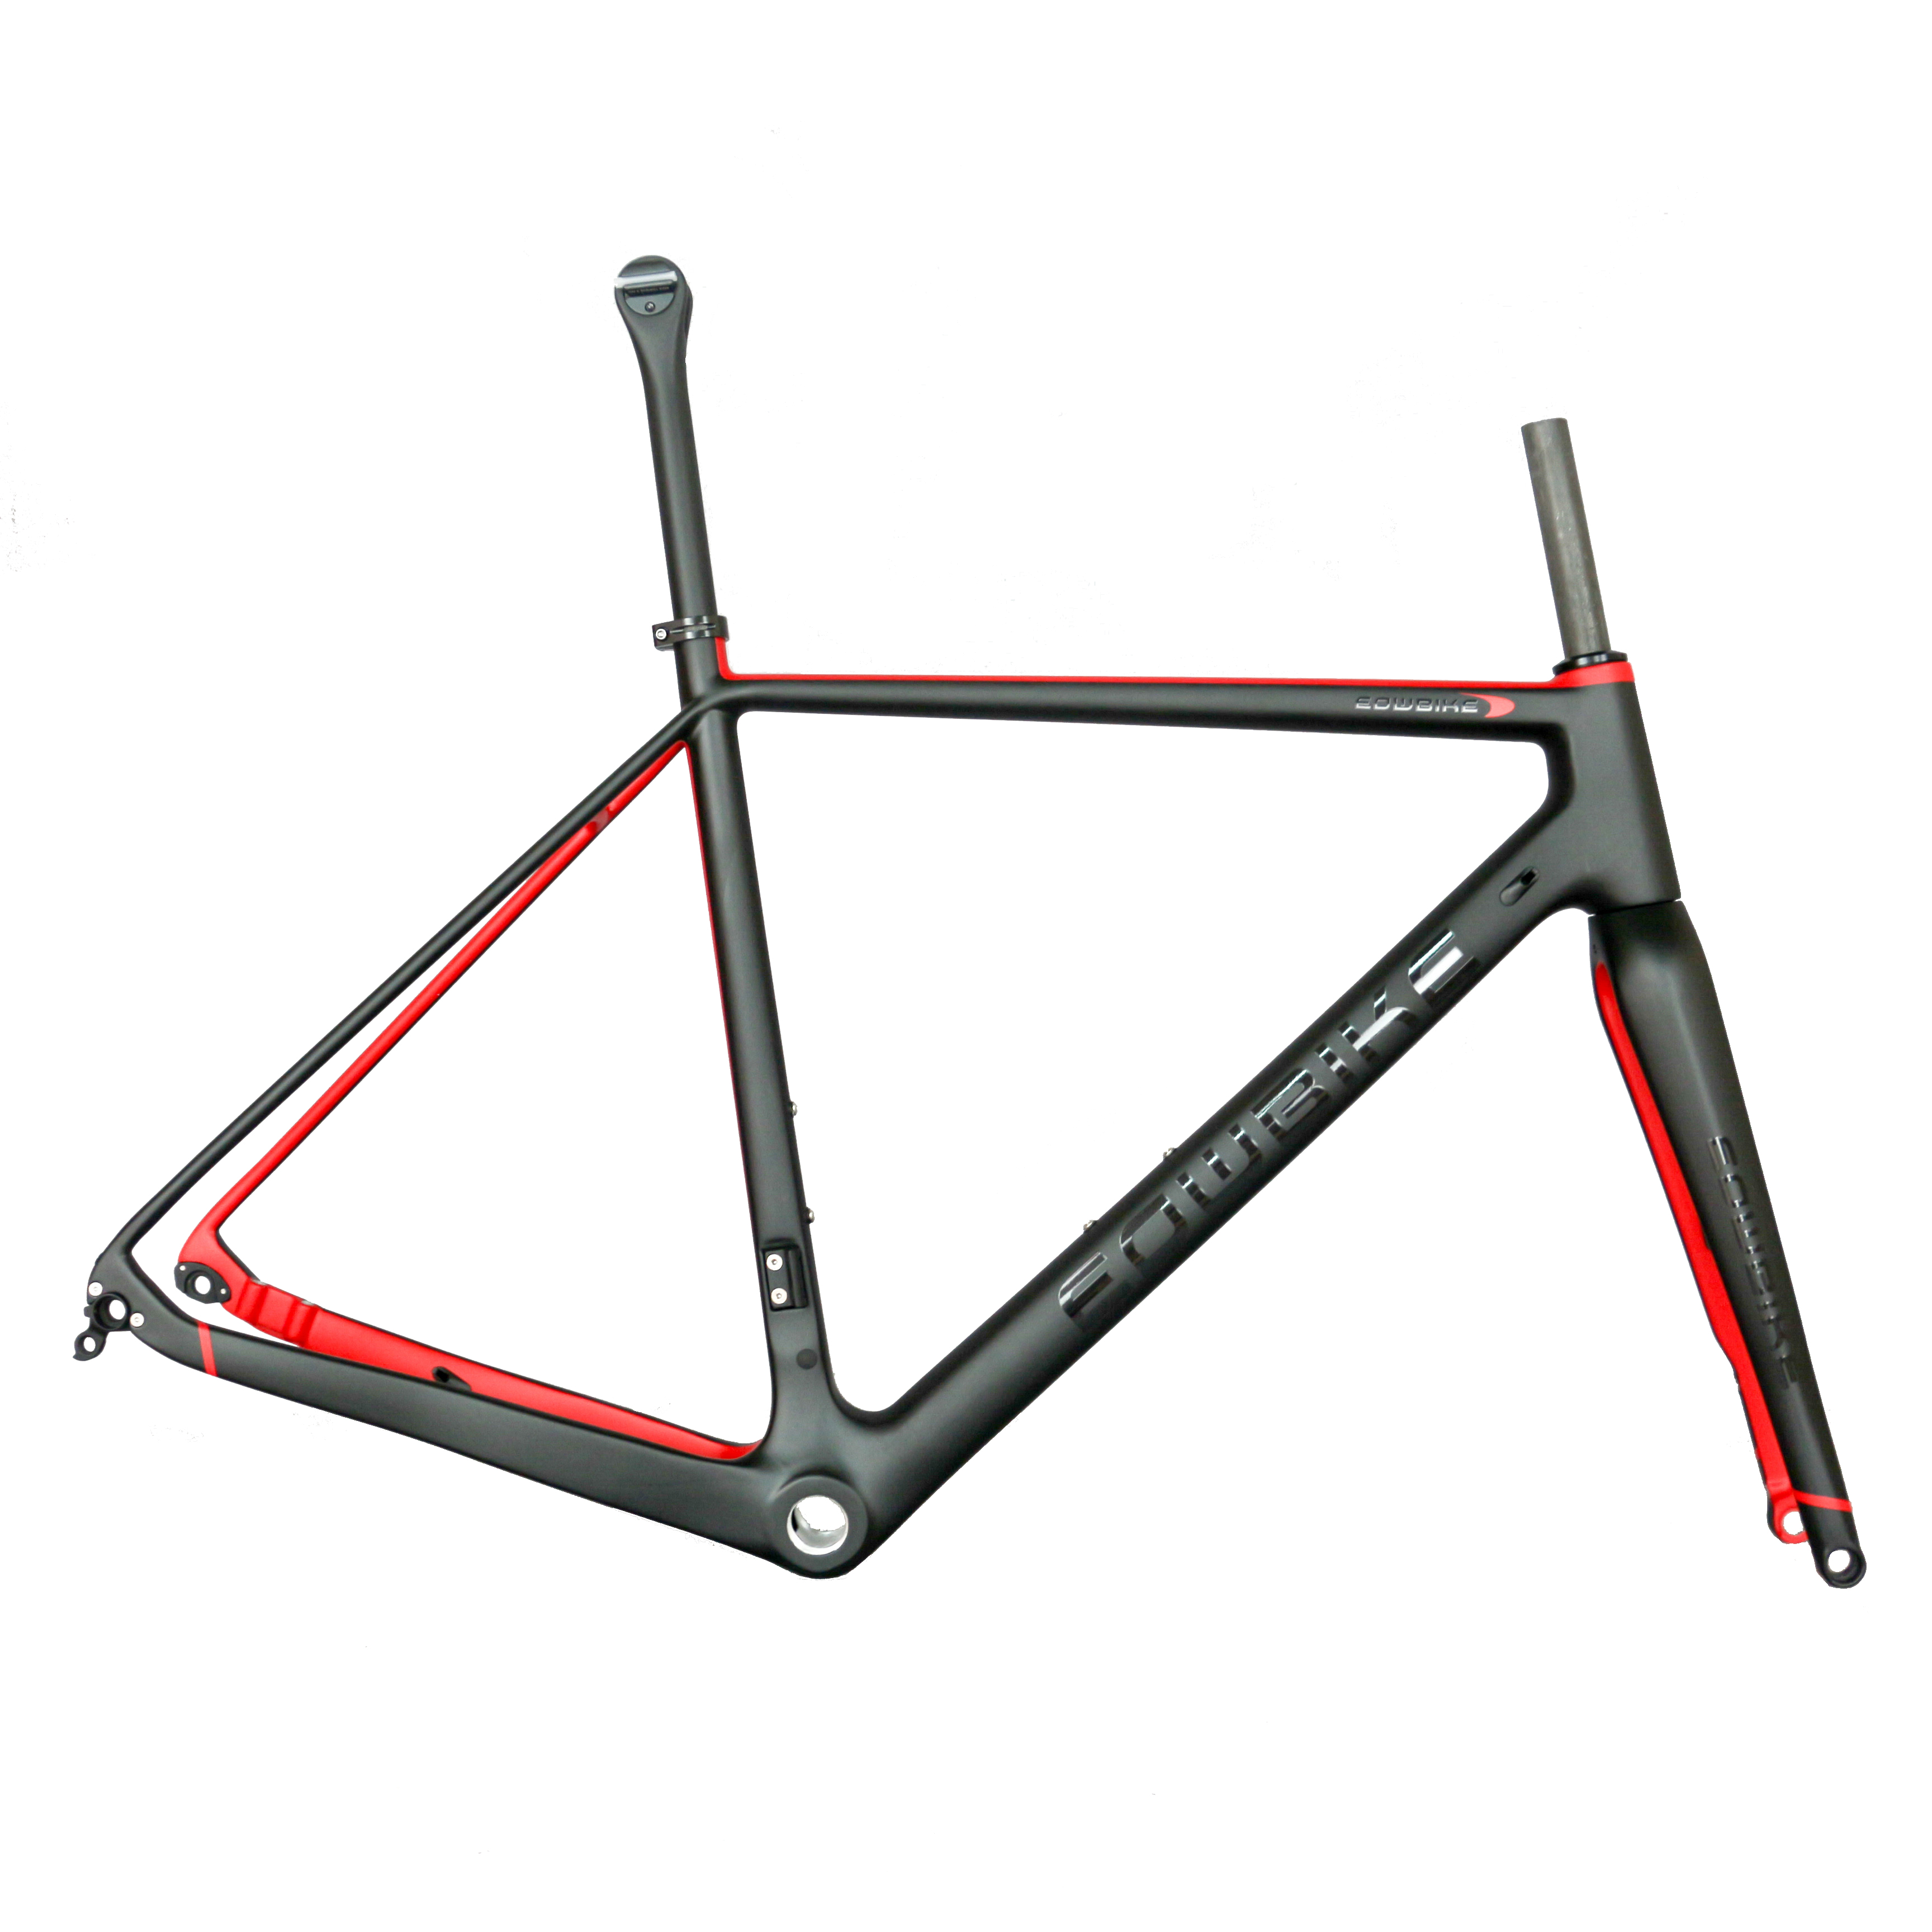 Seraph Carbon Fiber GR029 Gravel Bike Frame 700C Gravel Bike Axle 142*12mm Carbon Bike Frame Available Cuatom